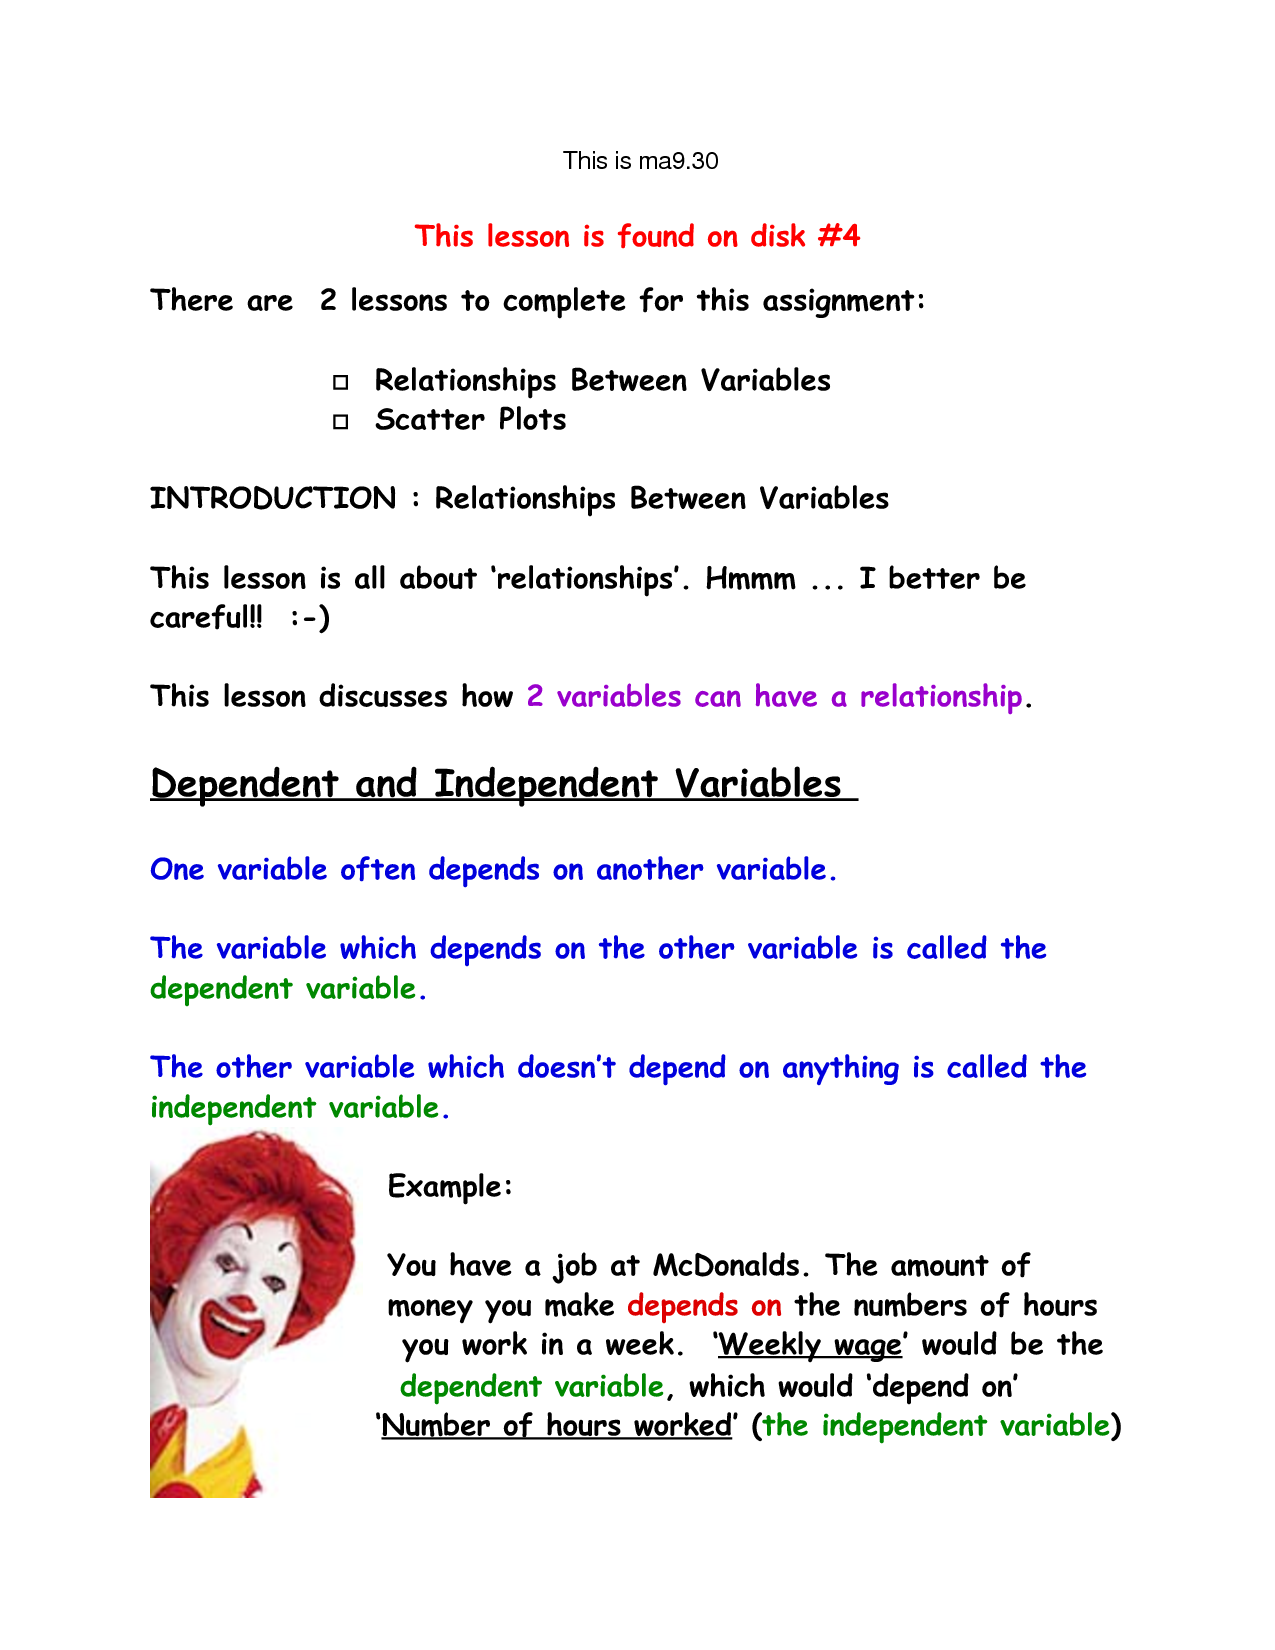 Worksheets Independent Vs Dependent Variable Worksheet independent dependent variable worksheet psychology intrepidpath dependant vs science clipart kid